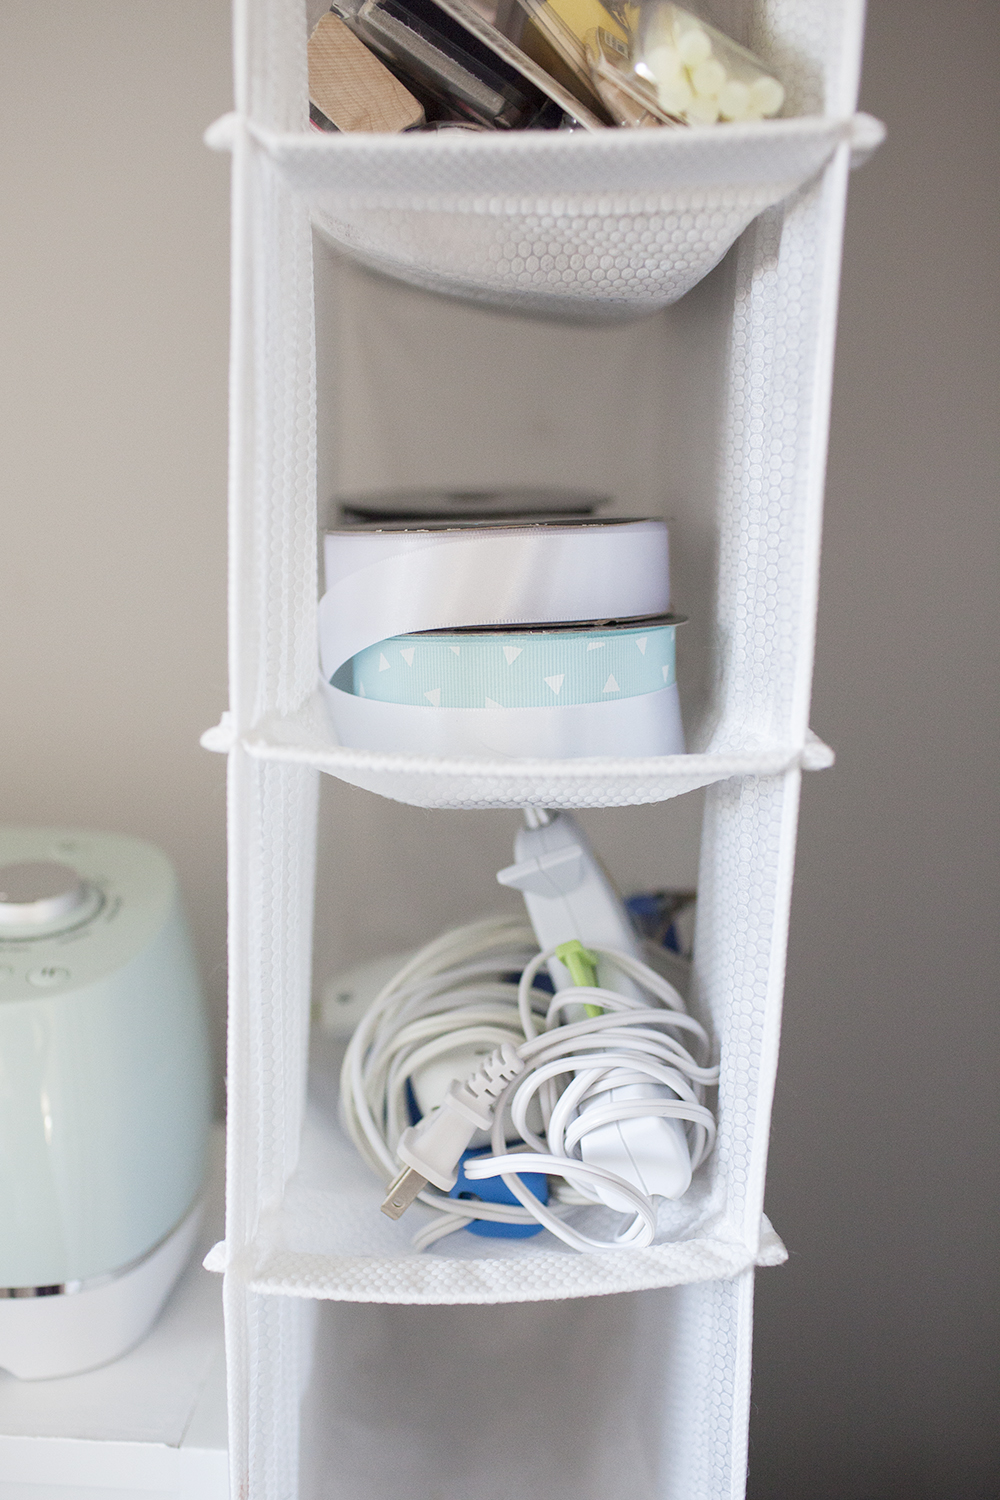 Craft Closet Organization Ideas Part - 44: Hanging Shoe Organizer For Craft Closet Organization